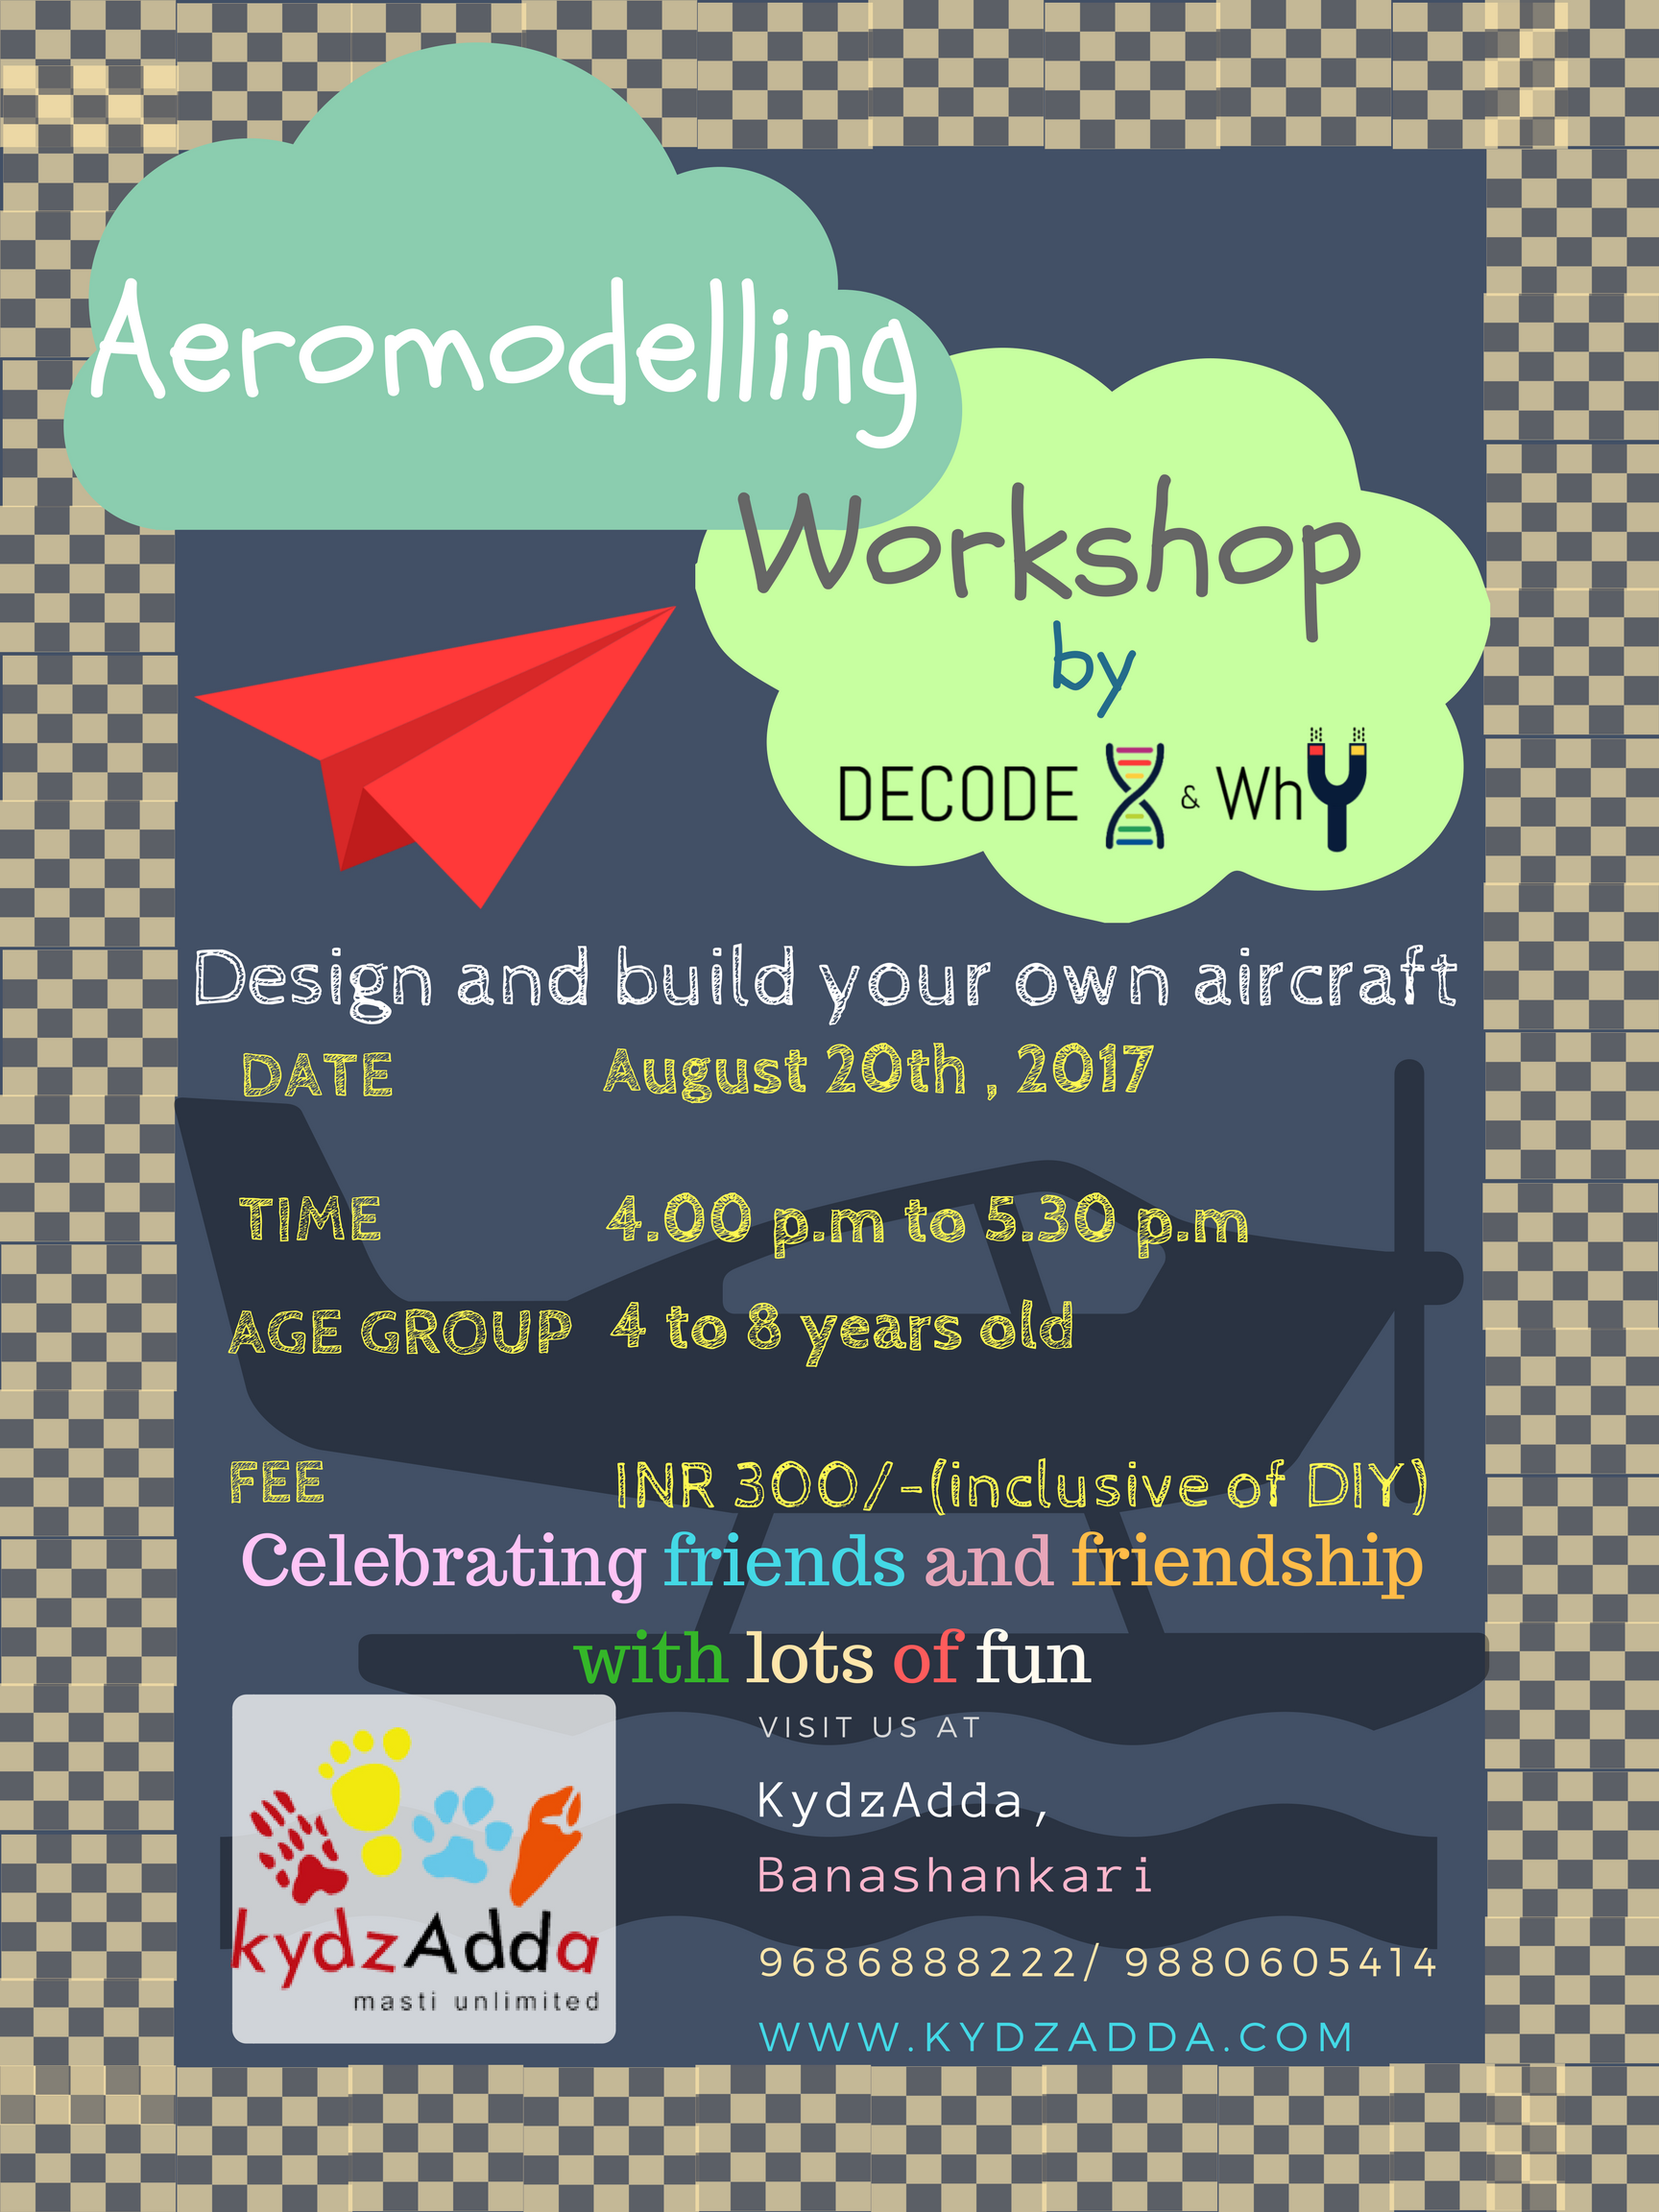 Aeromodelling Workshop Cover Image